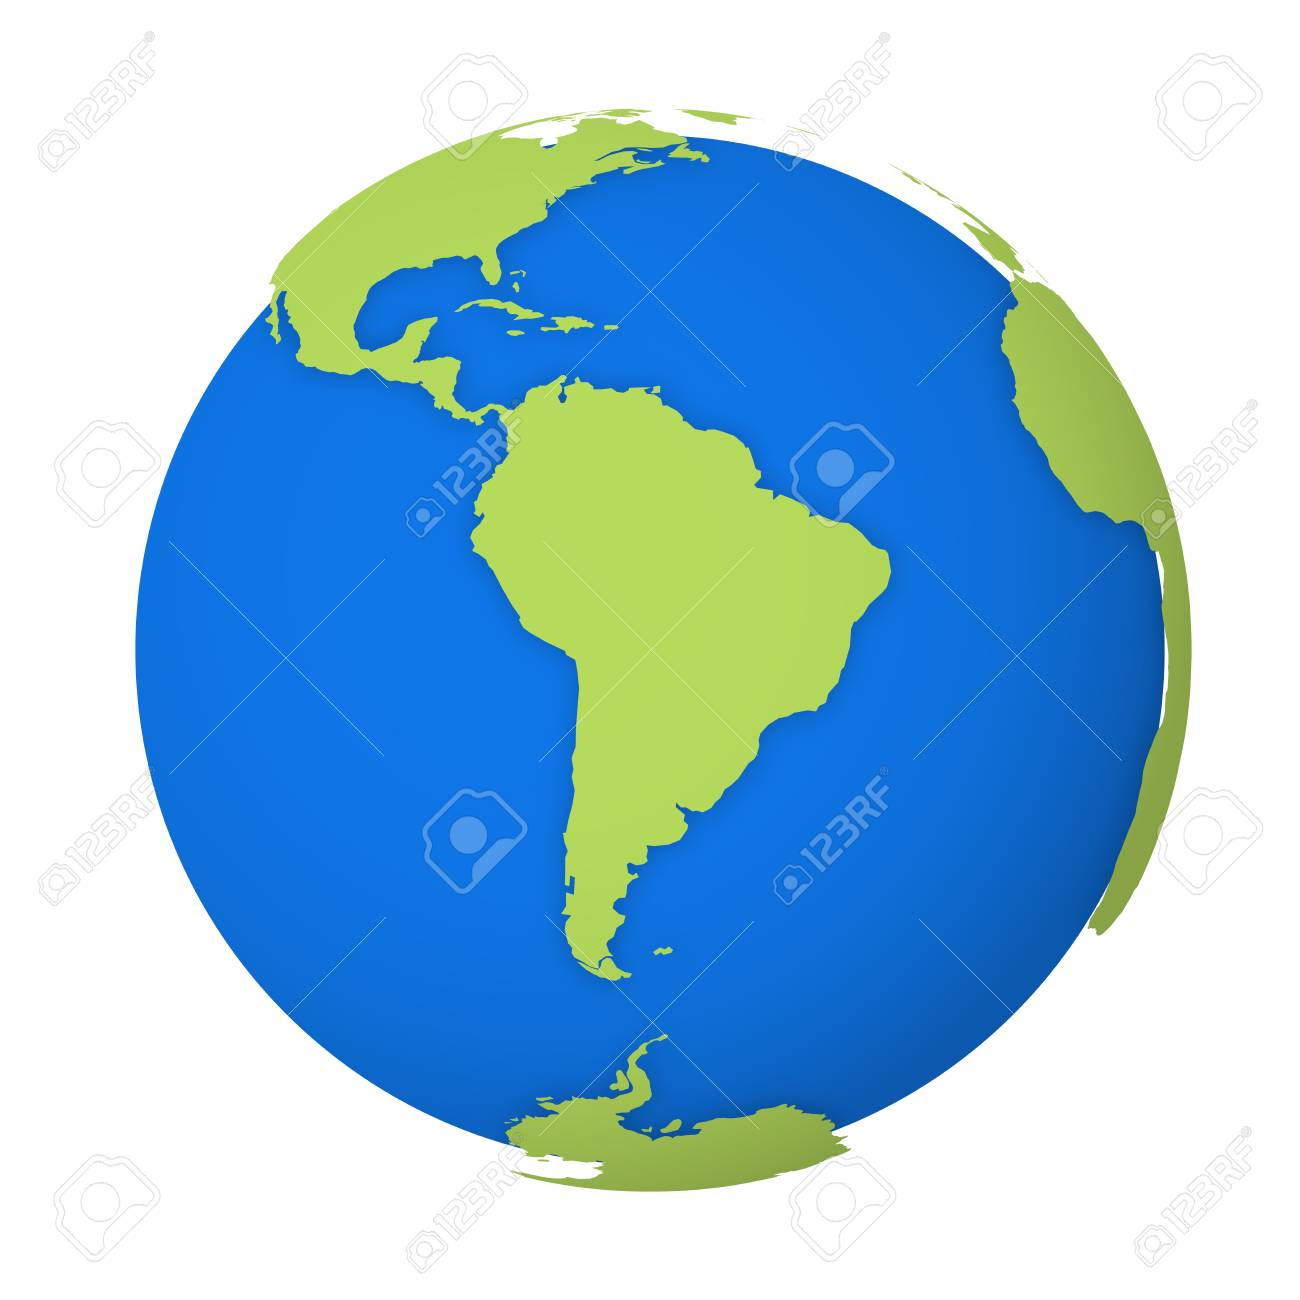 Natural Earth globe. 3D world map with green lands dropping shadows on blue seas and oceans. Vector illustration. - 120960377